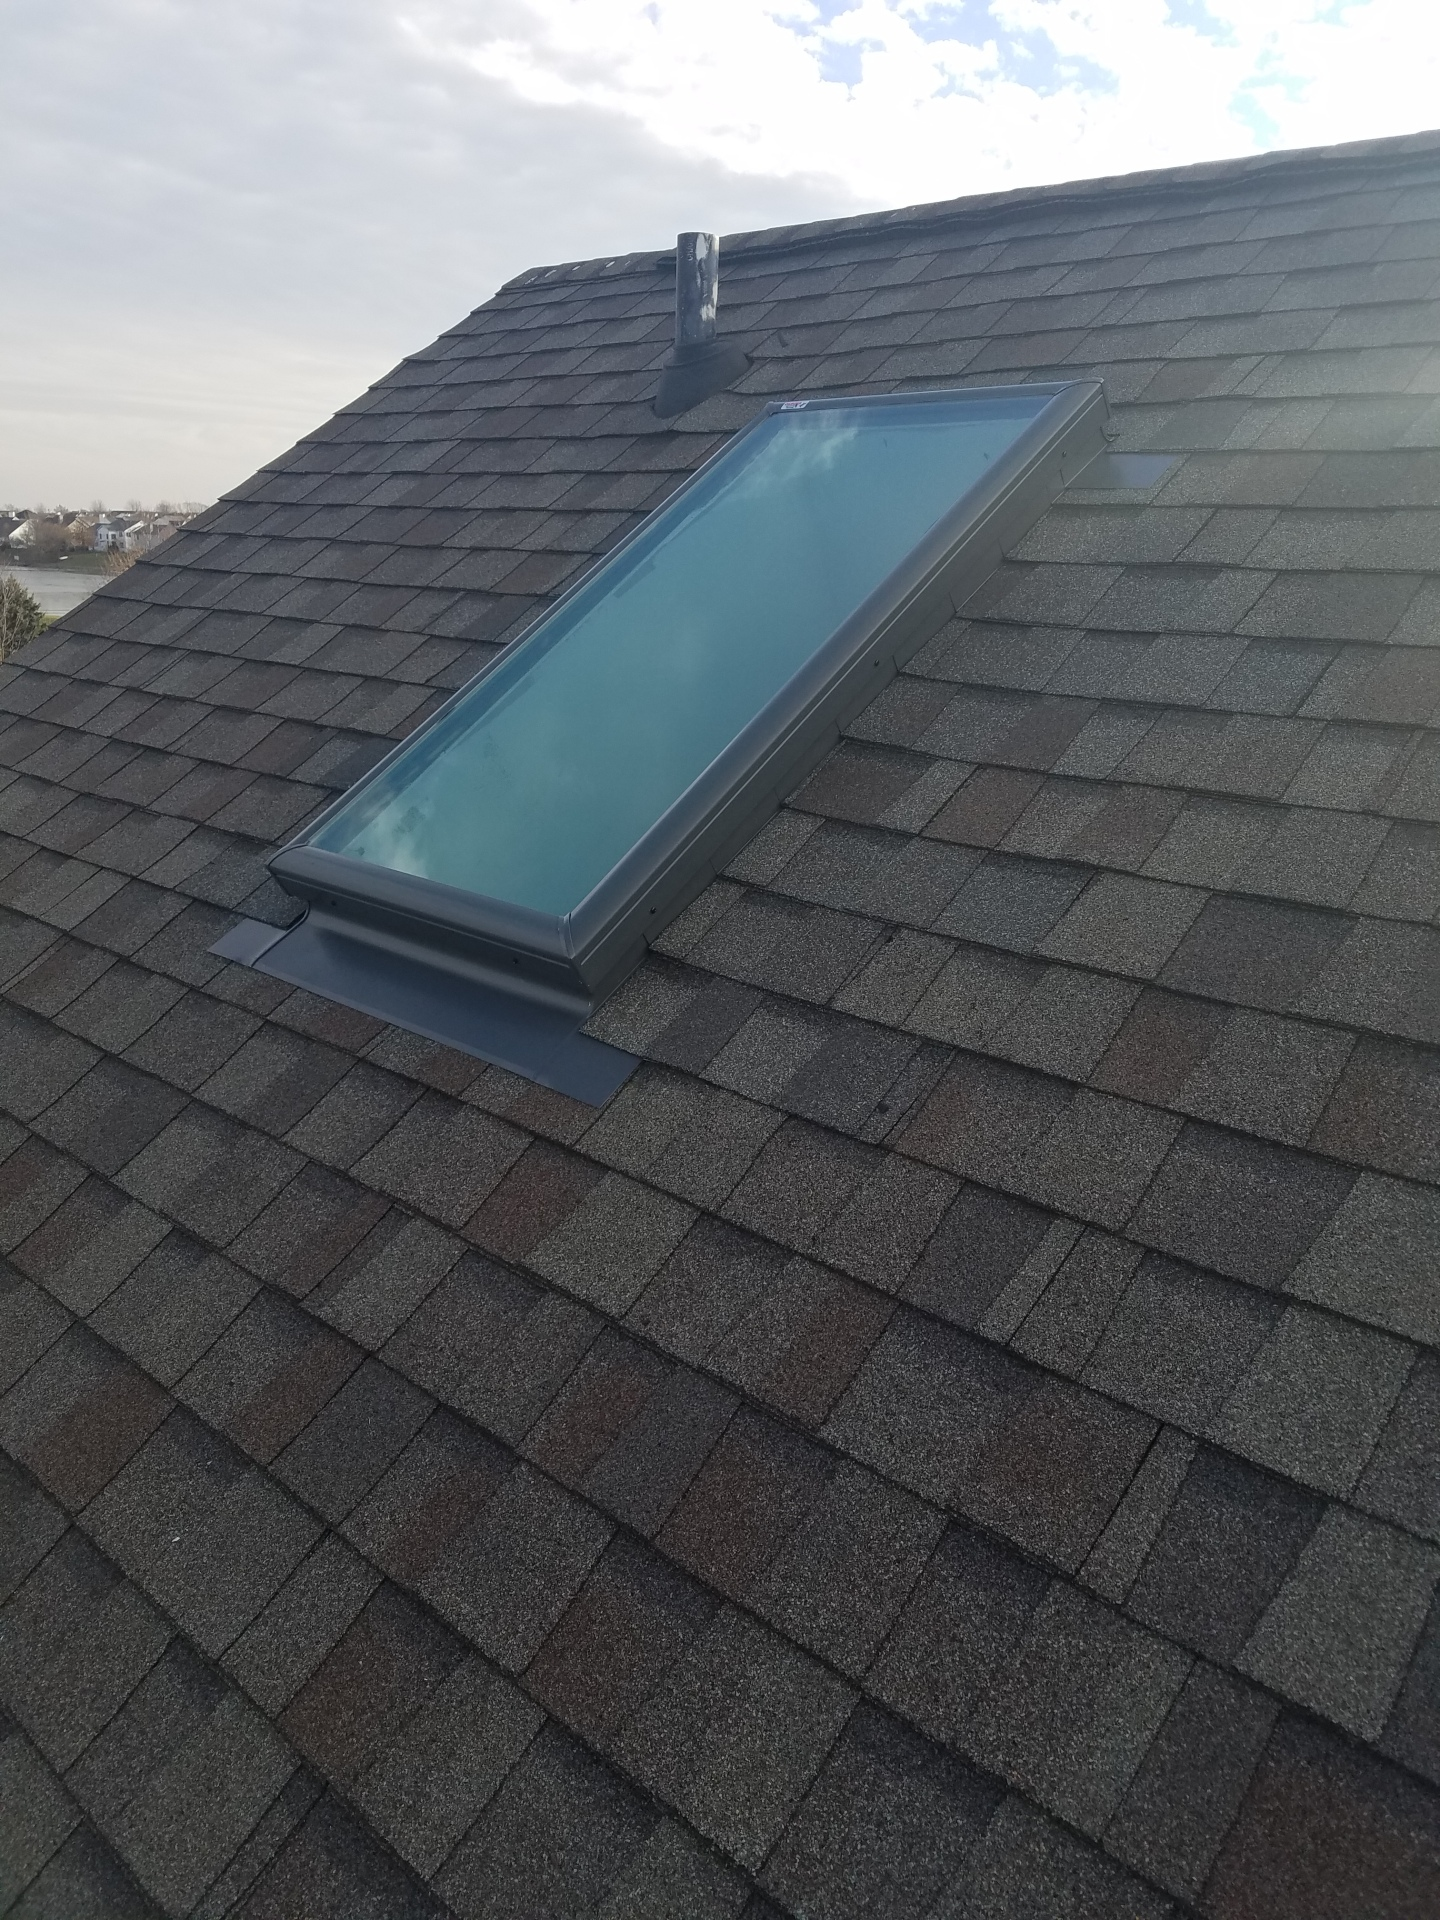 A new velux skylight installed on roof with shingles installed to match as closely as possible